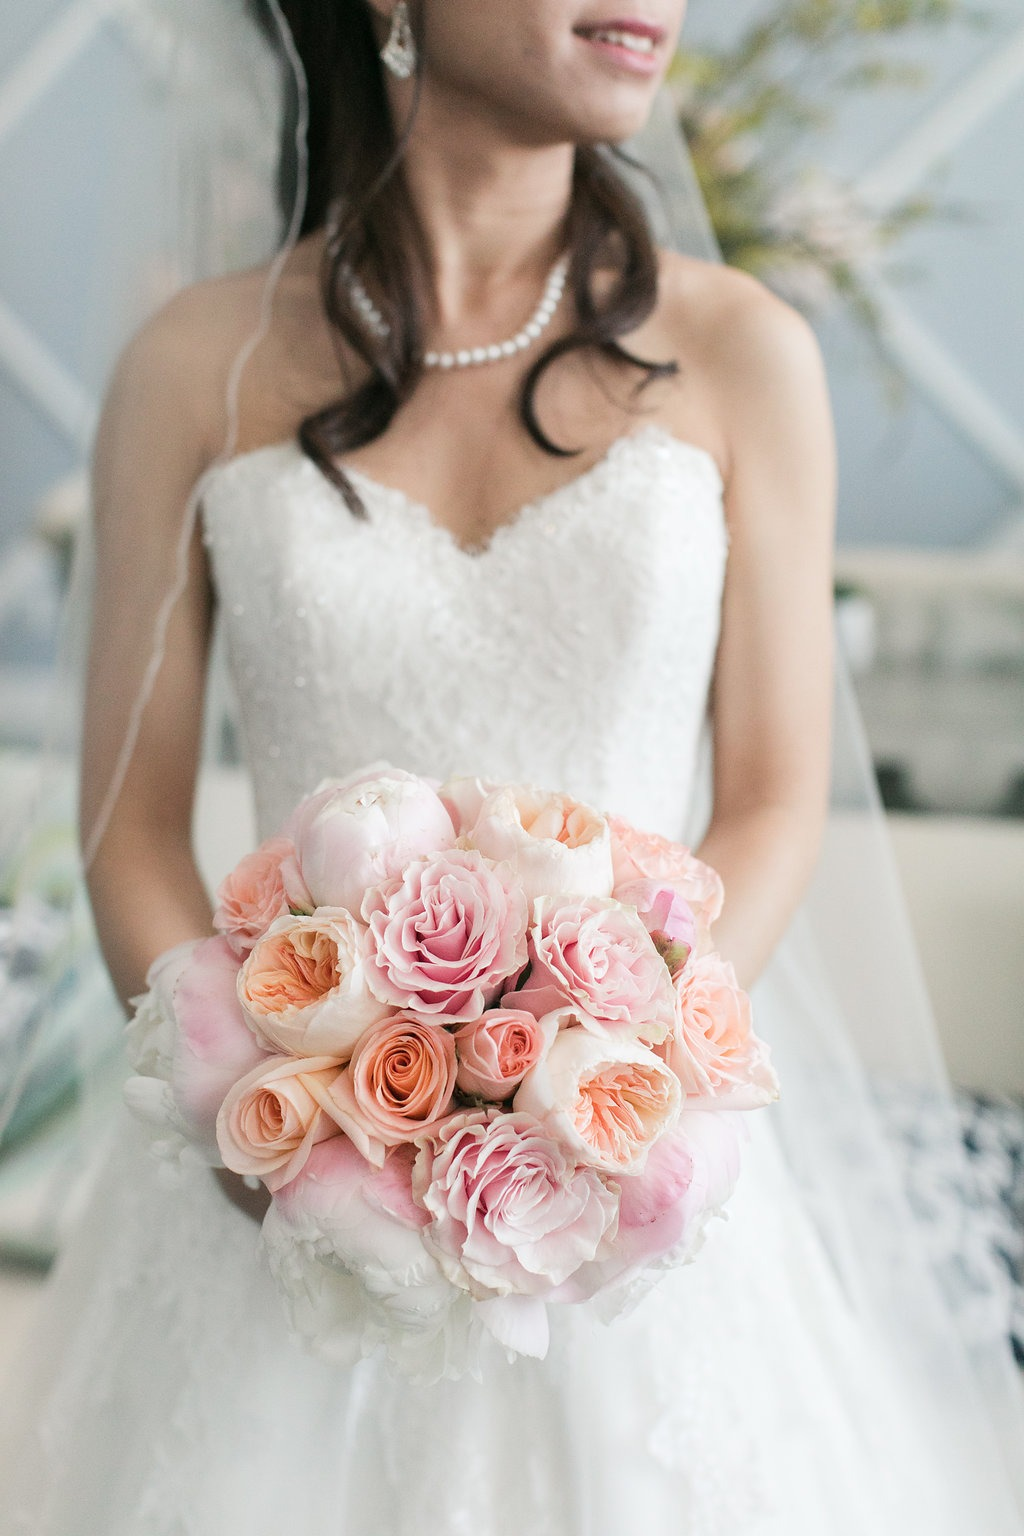 Beautiful in blush and white. Our bride looked gorgeous in her sweetheart neckline wedding dress and her bouquet of garden roses added